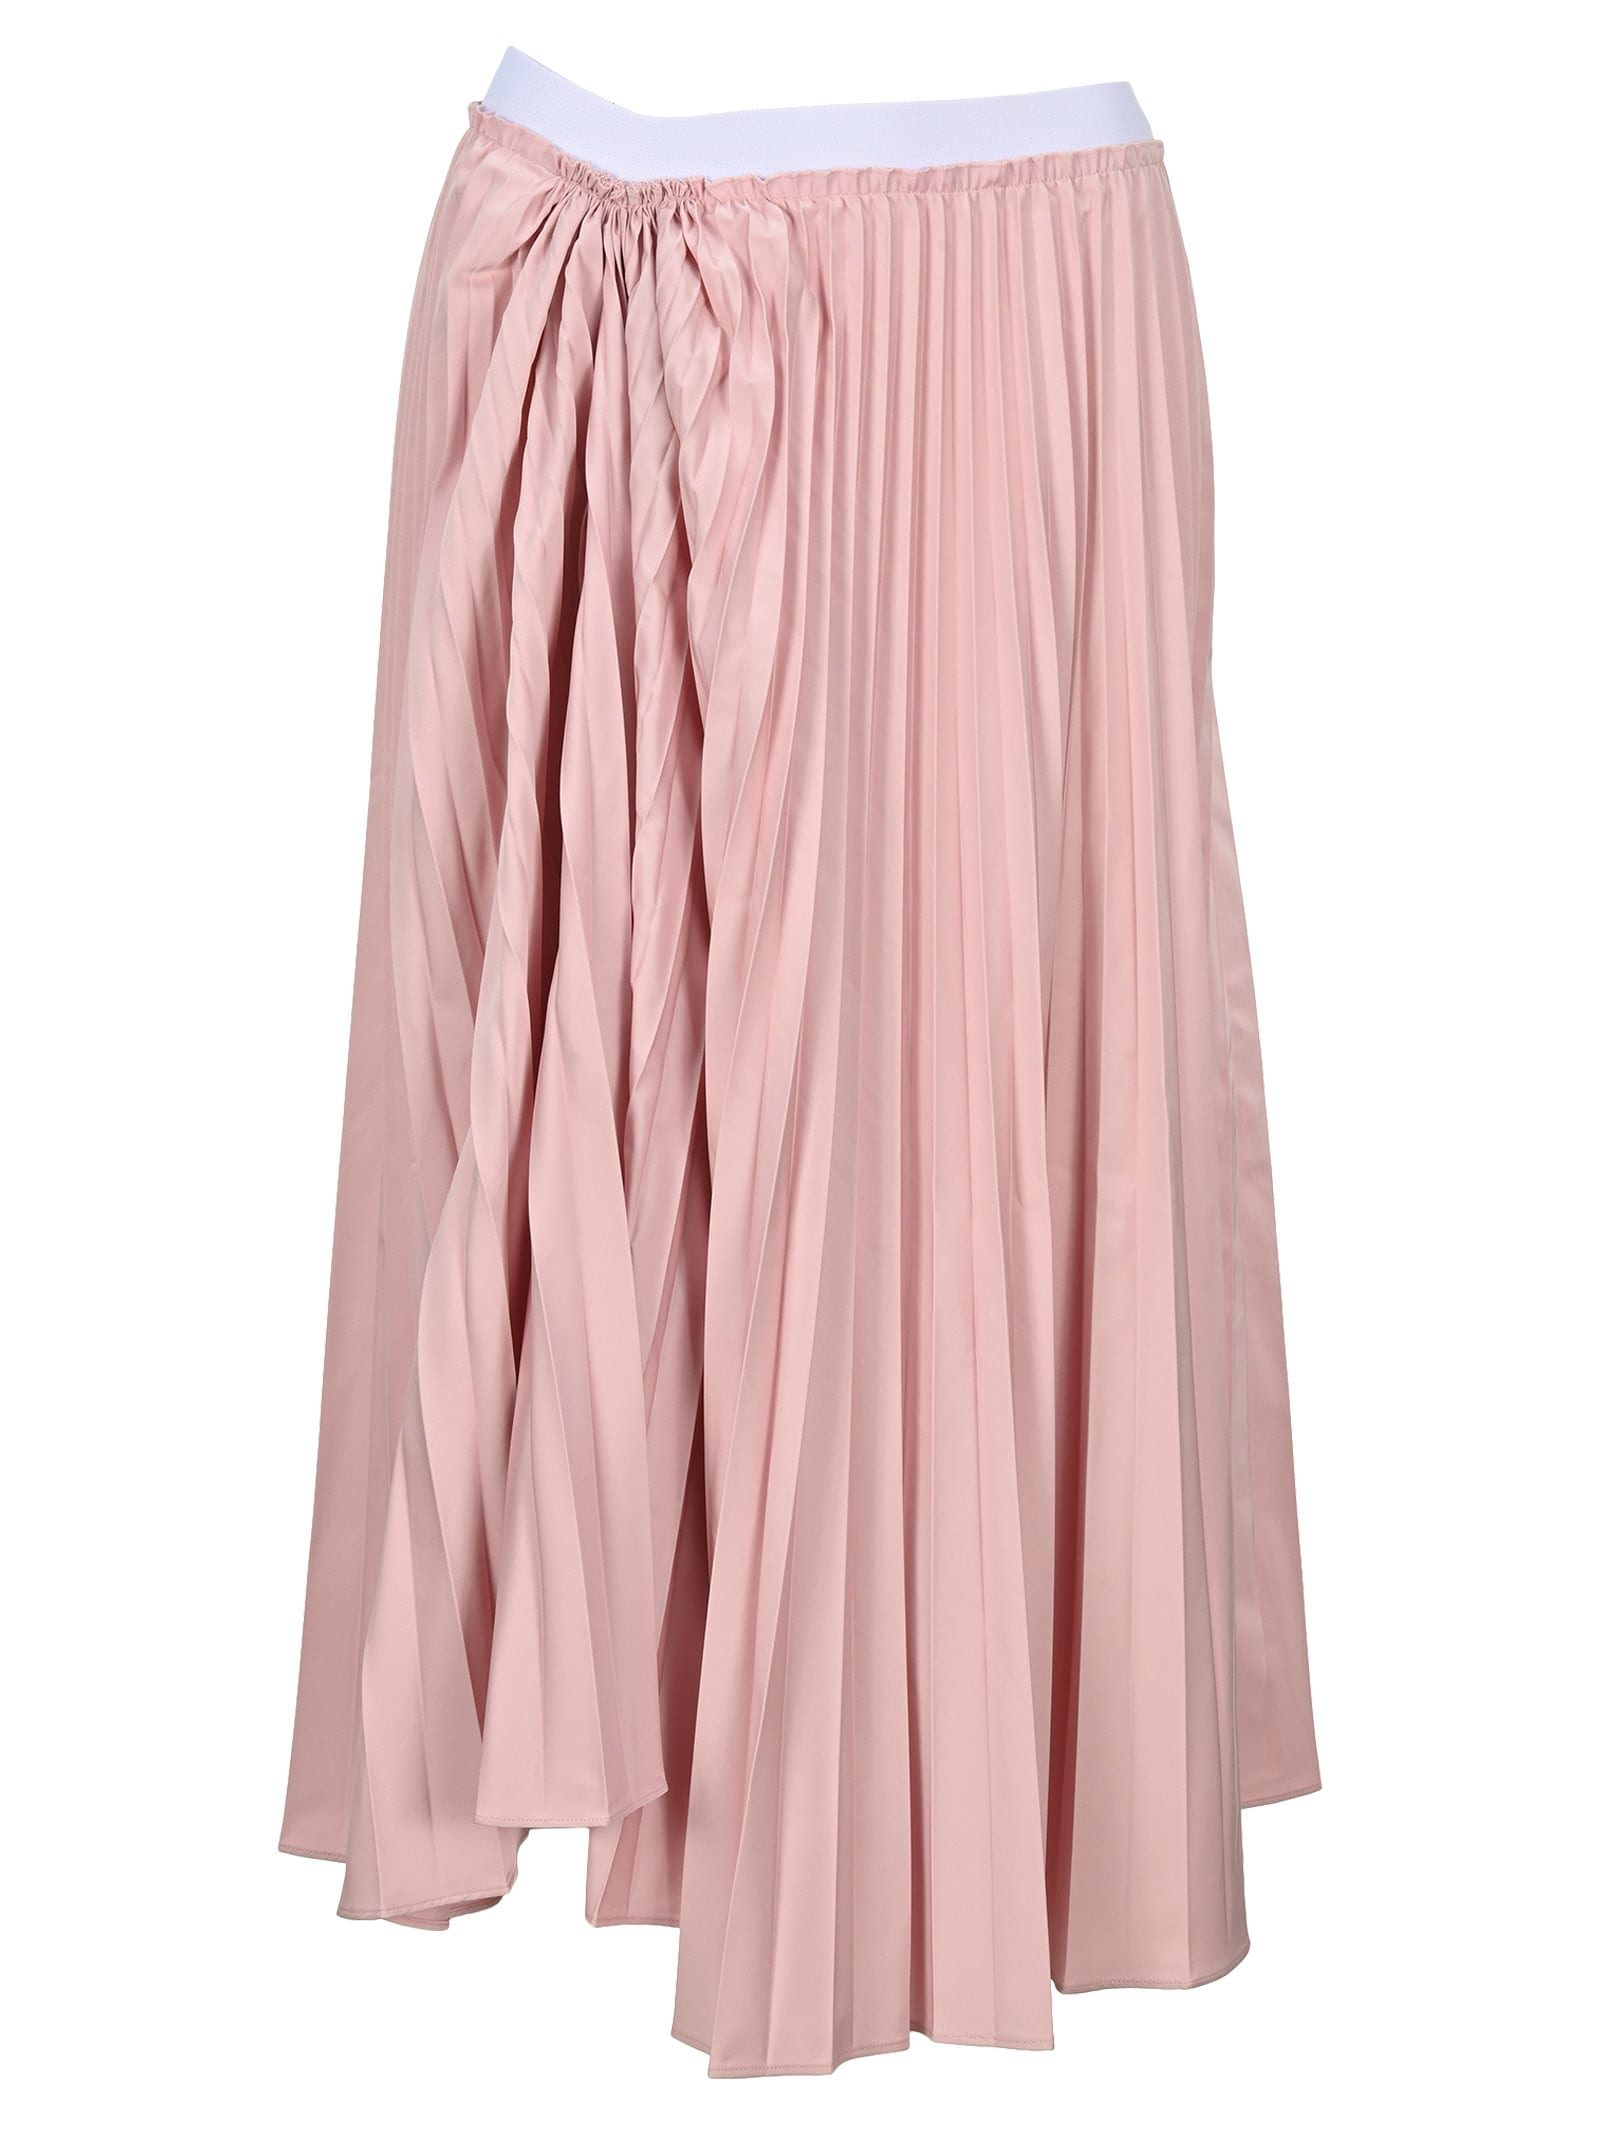 Marni PLEATED SKIRT